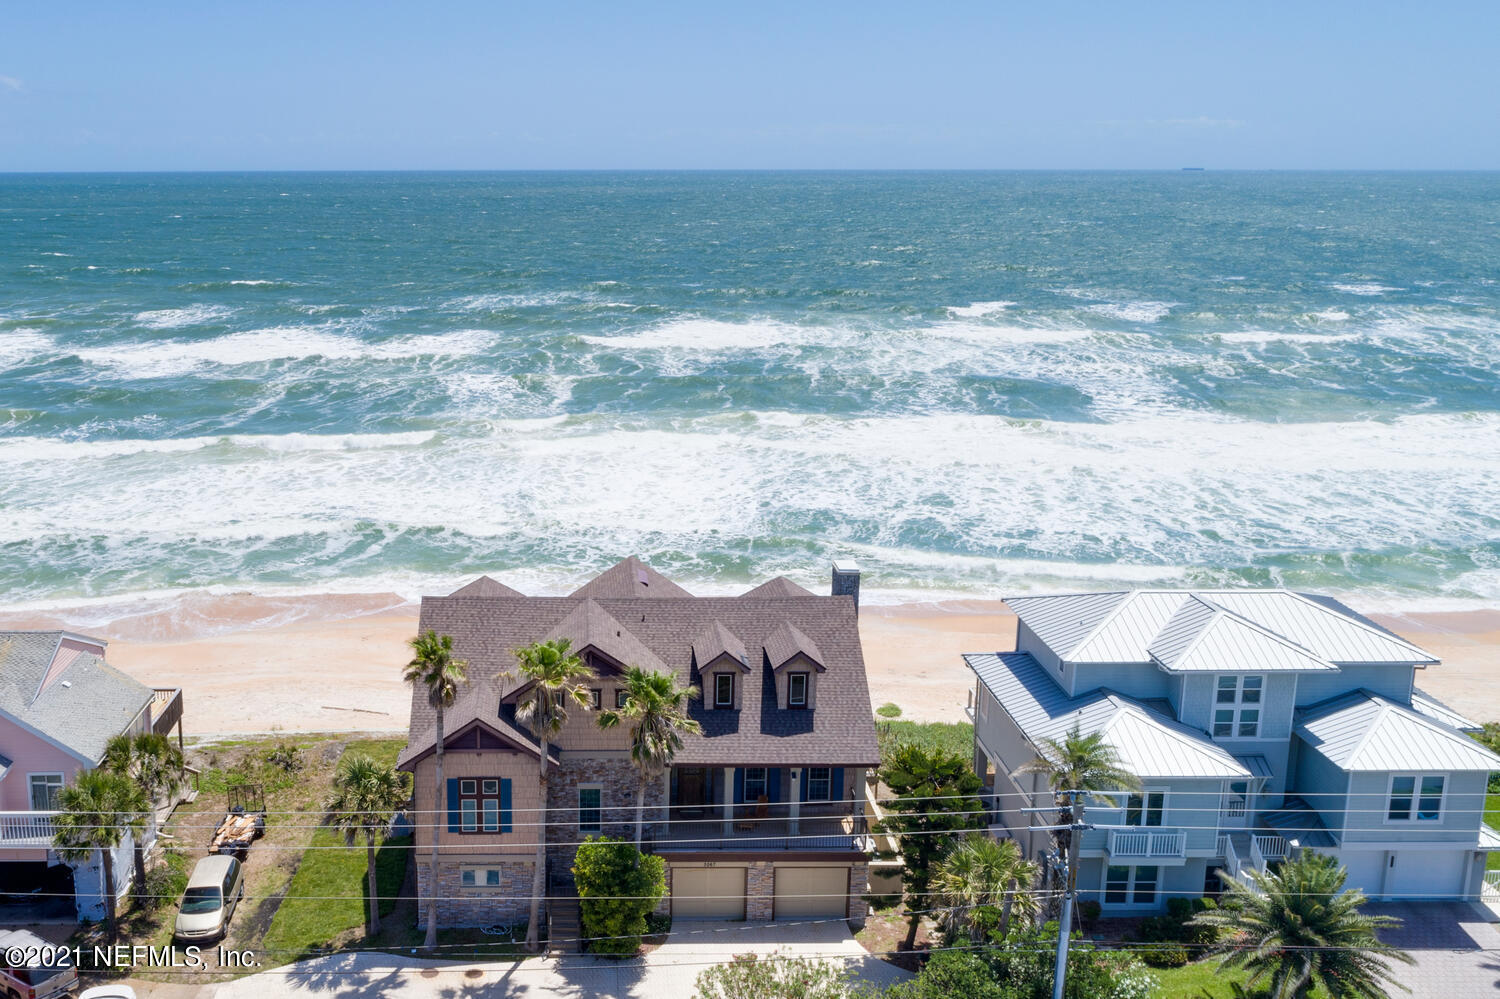 Stunning oceanfront estate with expansive views from nearly every room!  Main living space is on the 2nd floor with huge living & dining combo with beautiful river rock fireplace.  Enjoy the chefs kitchen with Thermador appliances!  One of two master suites is also located on the main floor.  1st Floor includes 2 more bedrooms,  kitchenette, laundry room, game room, wet bar, cabana bath.  3rd Floor has another beautiful master suite with private balcony, 2 other secondary bdrms.  Home is complete w/ 2 car garage and elevator.  Backyard space includes oceanfront fire pit, and more lounging space to soak in the magnificent views!  Home is currently being used as a vacation rental with awesome income - or enjoy this as a perfect family retreat!! BRING ALL REASONABLE OFFERS!